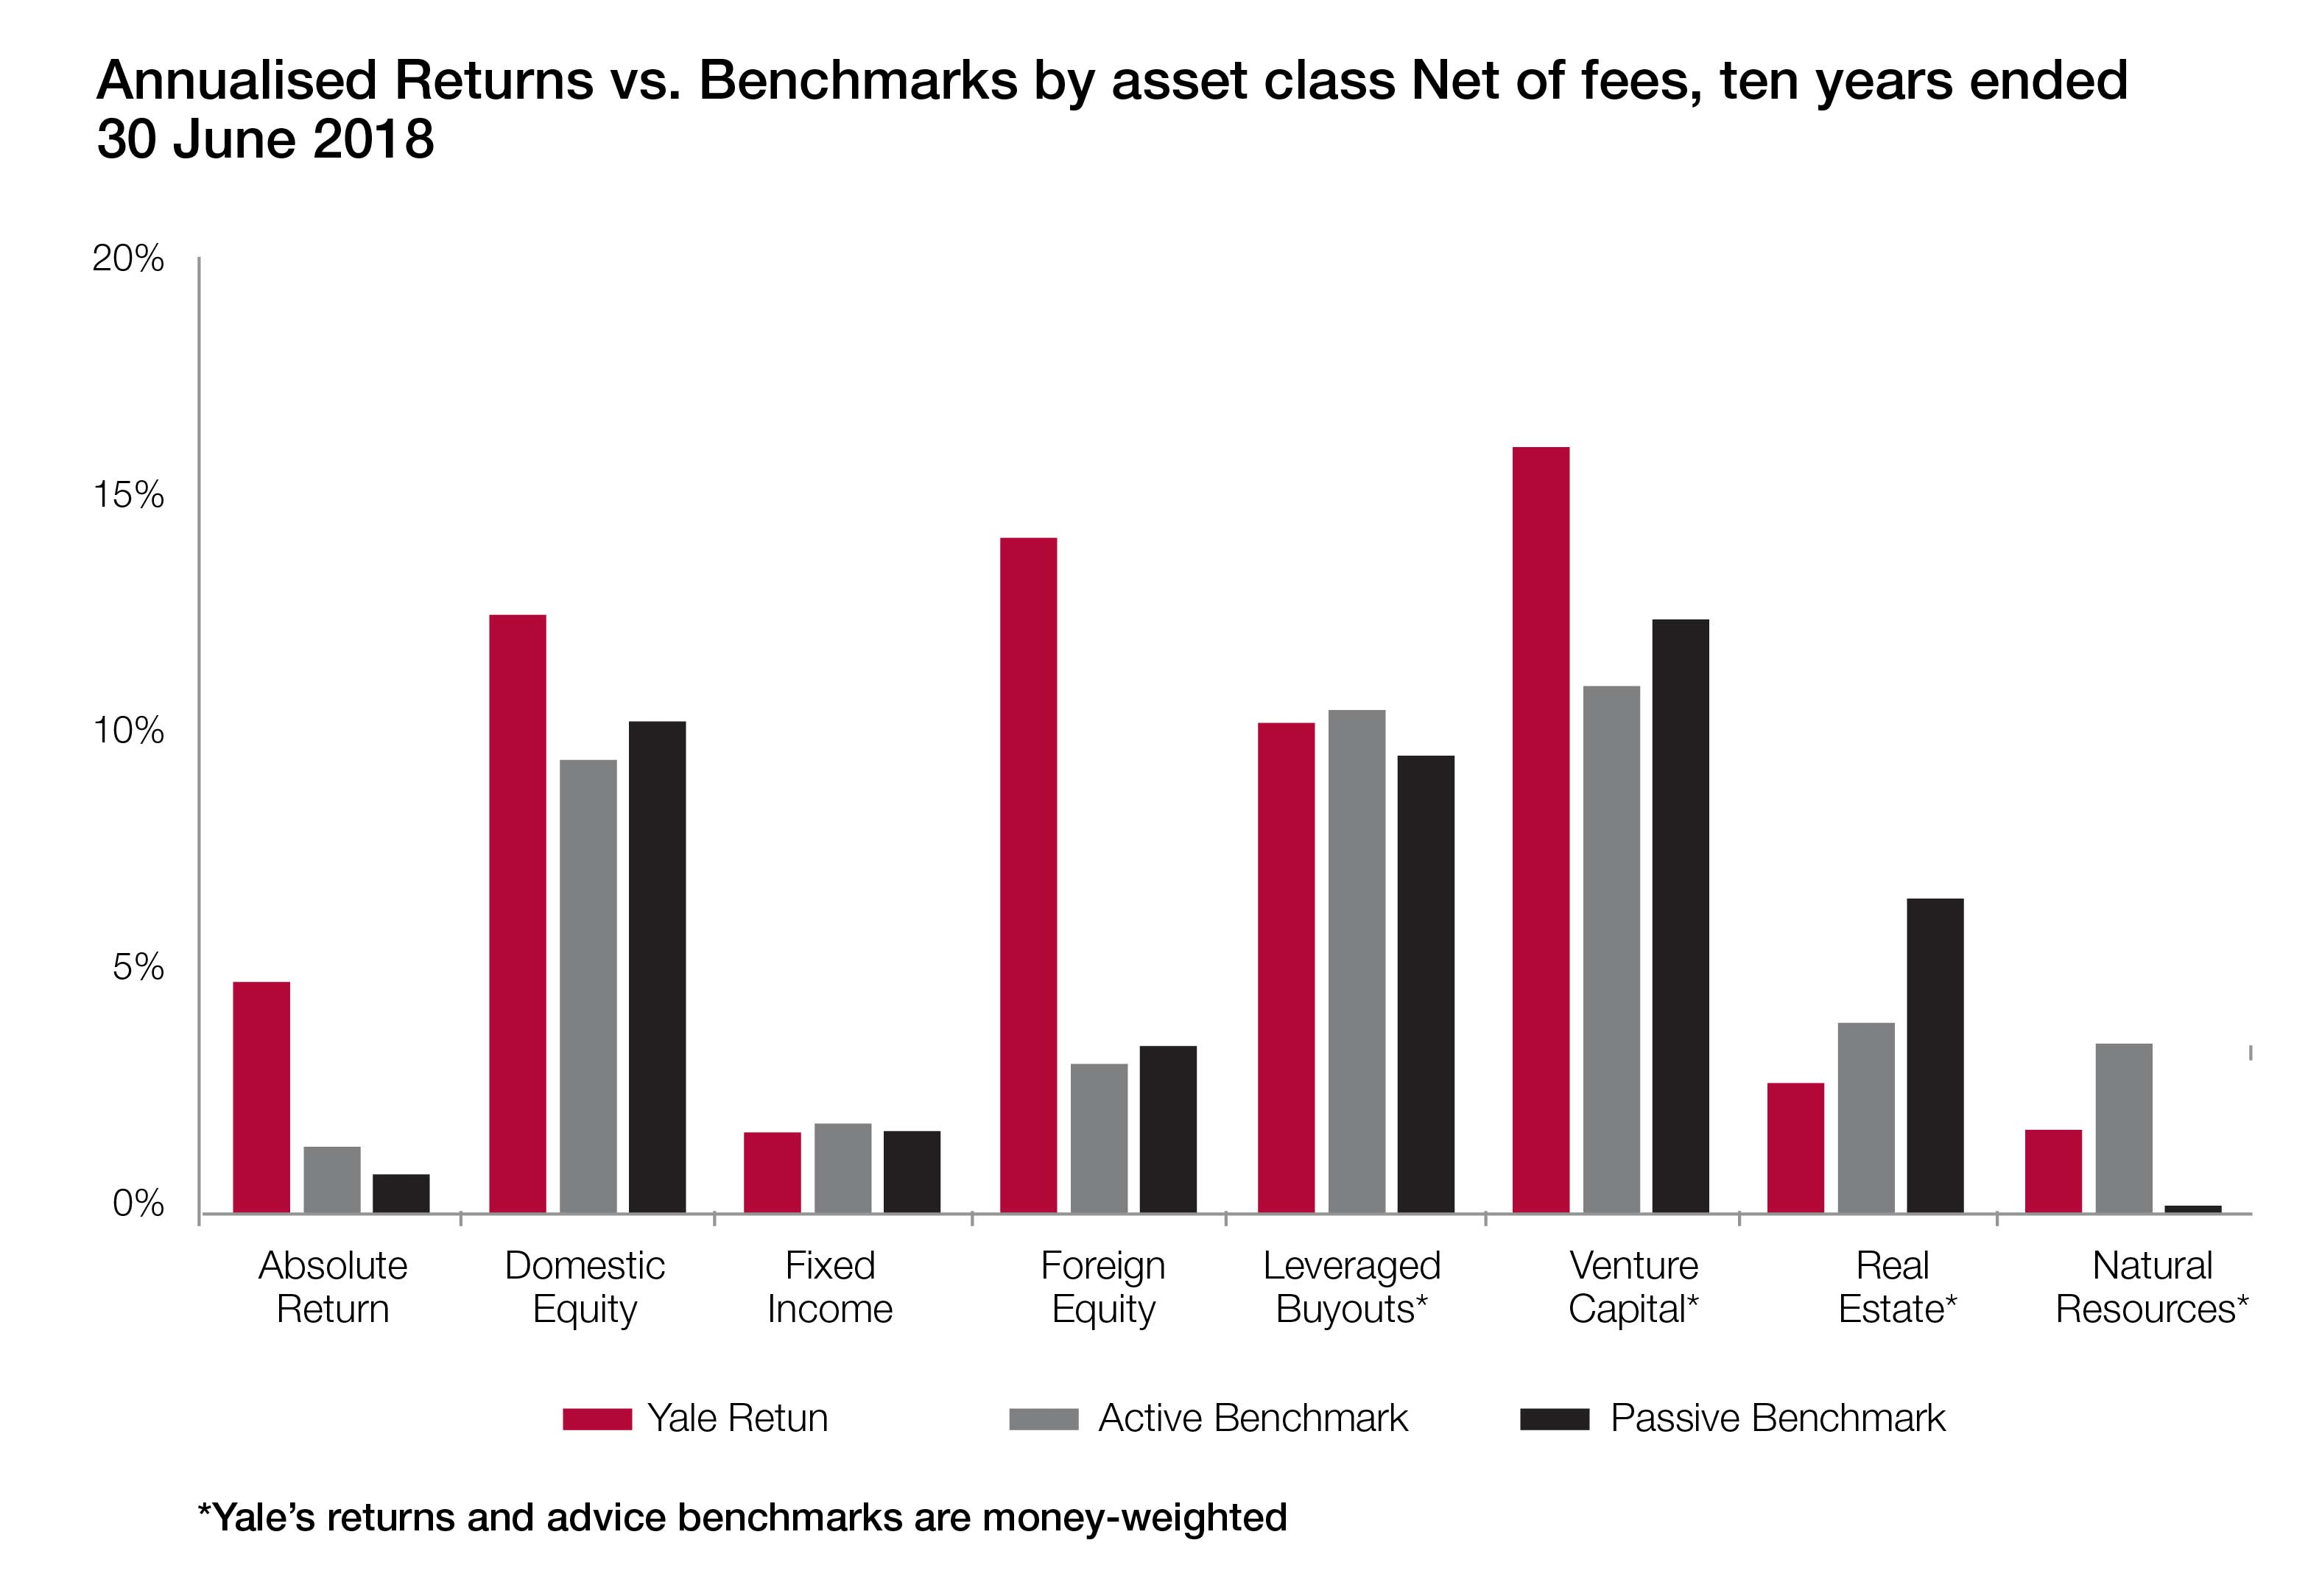 Annualised returns vs benchmarks